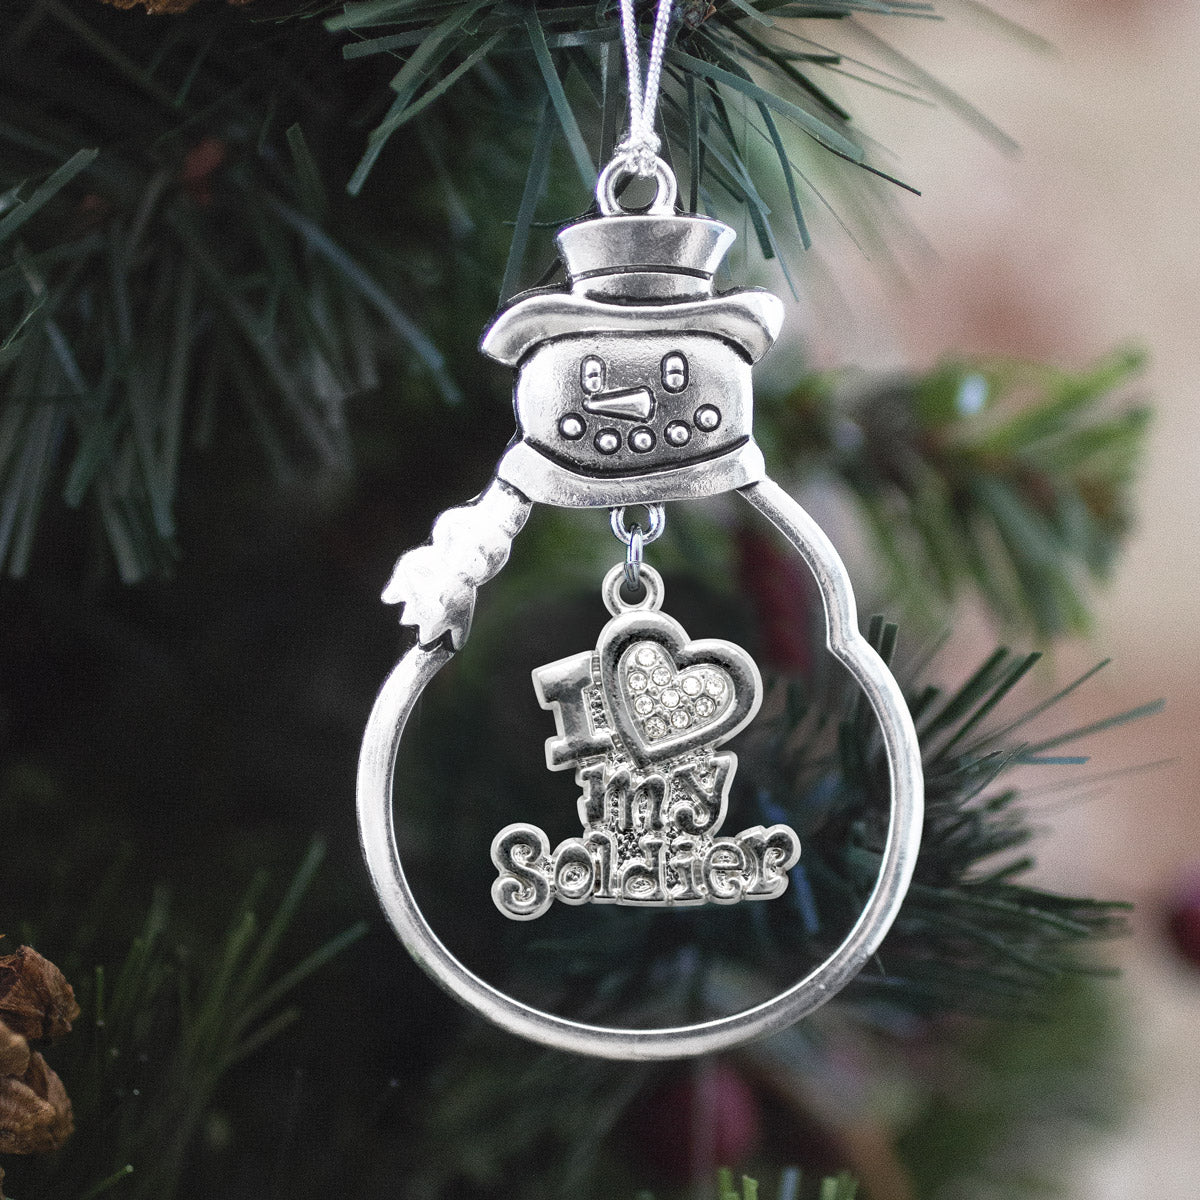 Half Carat I Love My Soldier Charm Christmas / Holiday Ornament